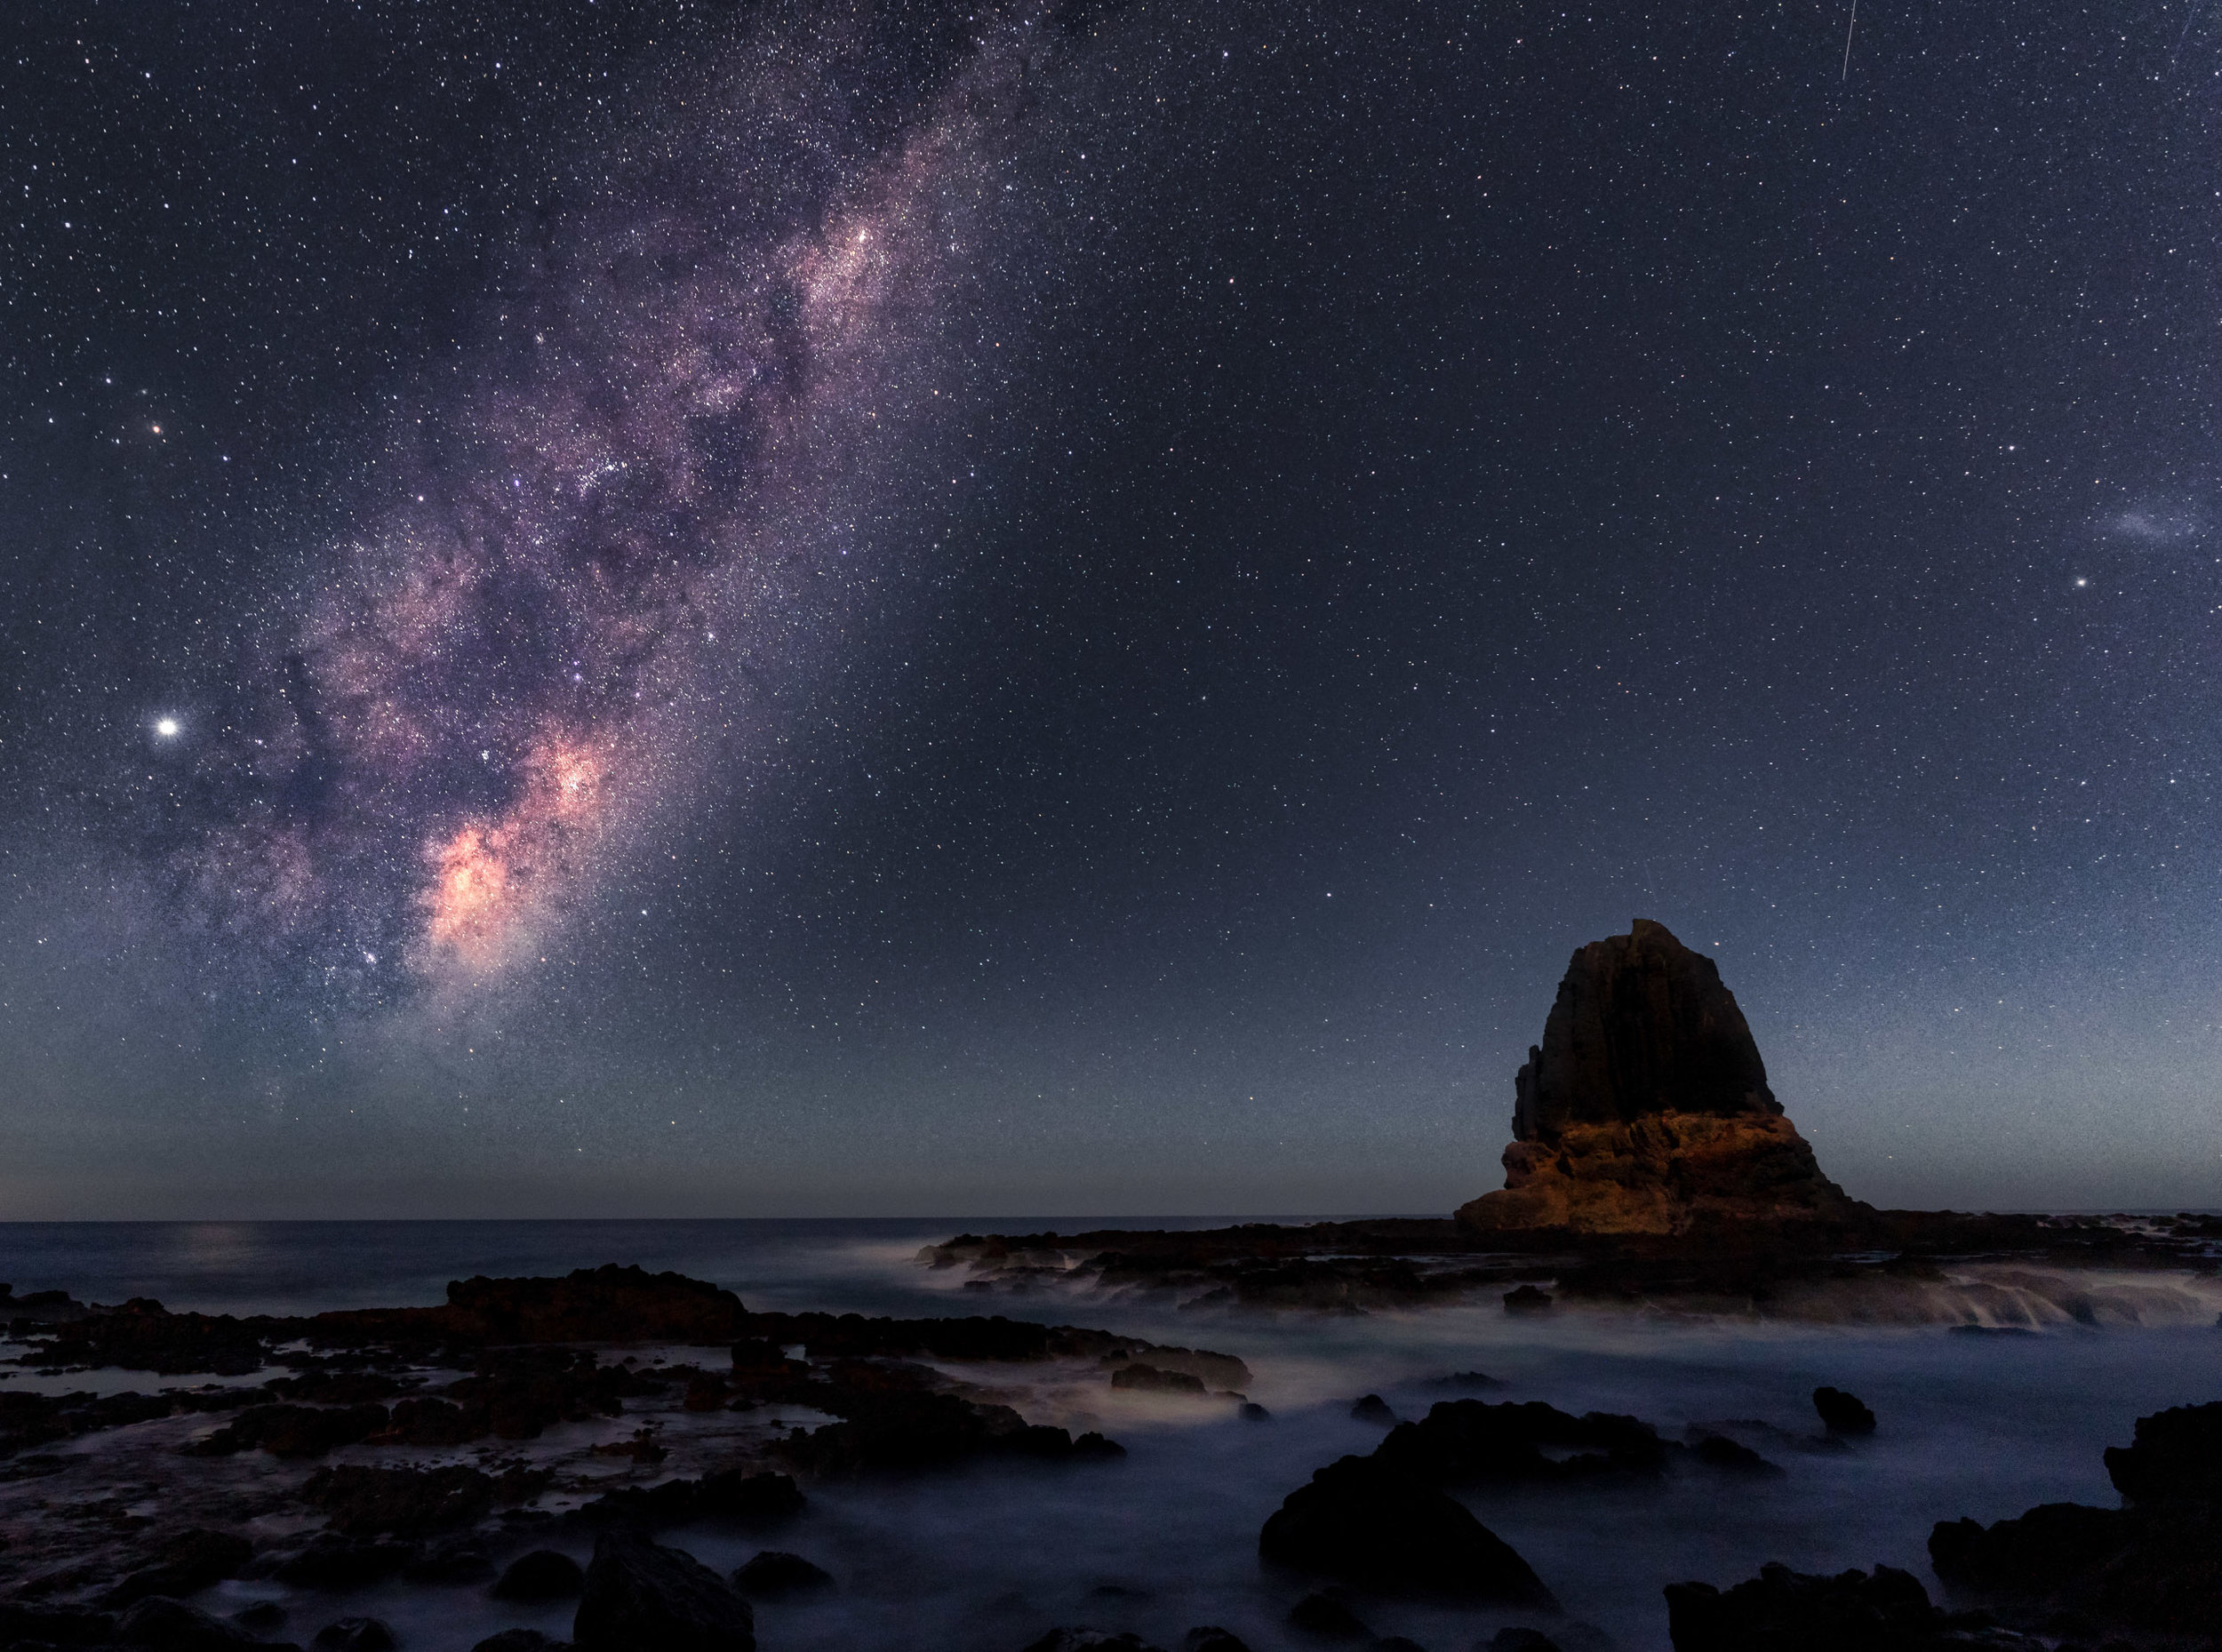 Pulpit Rock on the Mornington Peninsula is the perfect accompaniment to the Milky Way Core.